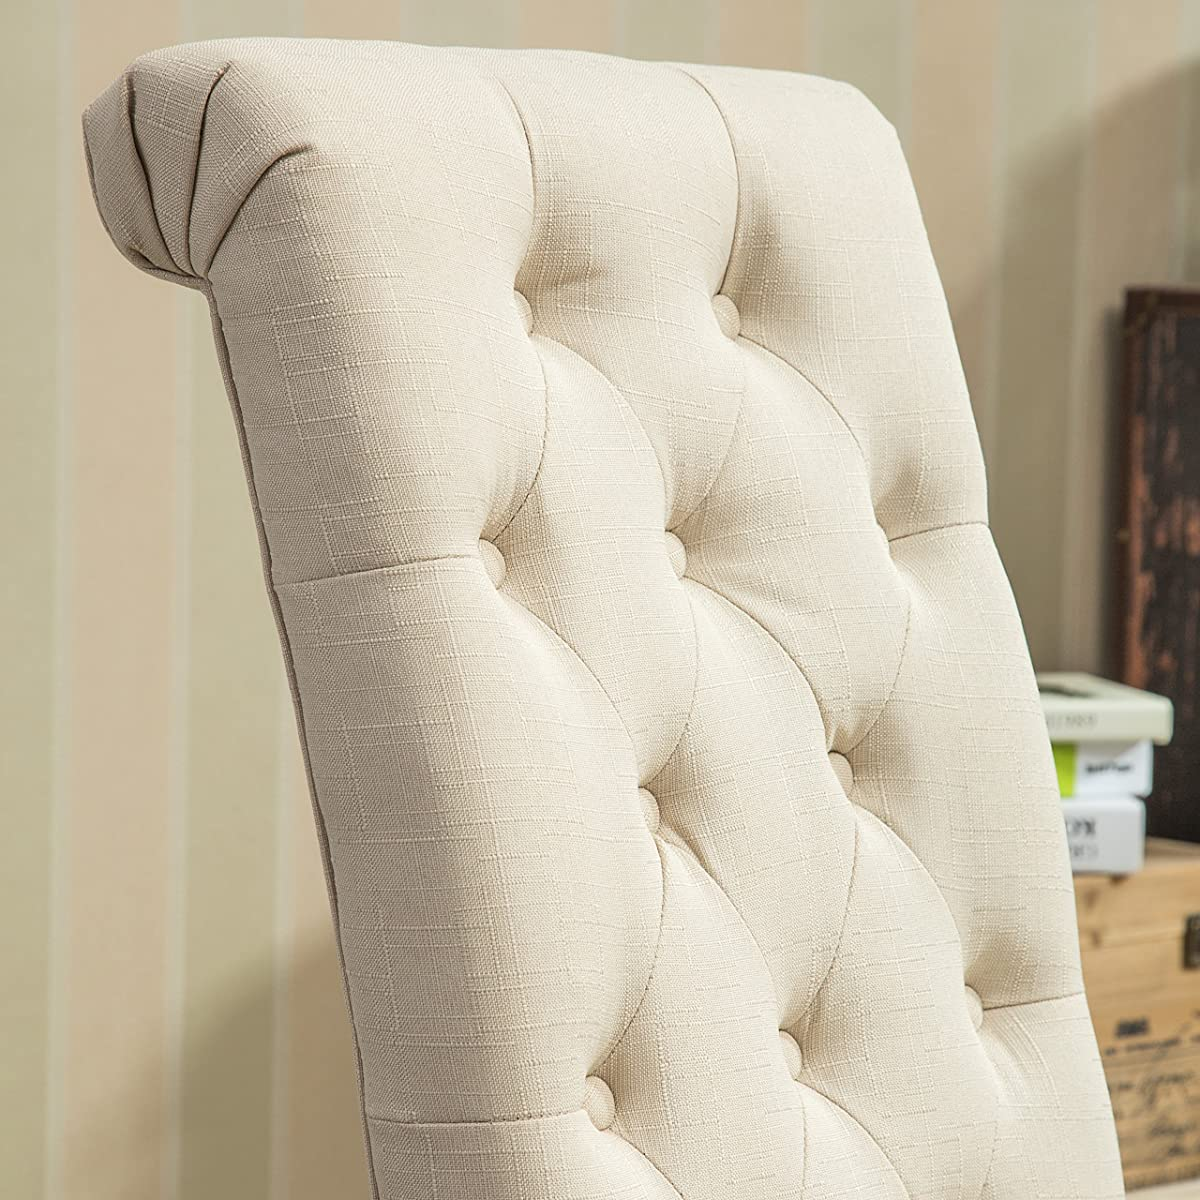 Roundhill Furniture Habit Solid Wood Tufted Parsons Dining Chair (Set of 2), Tan